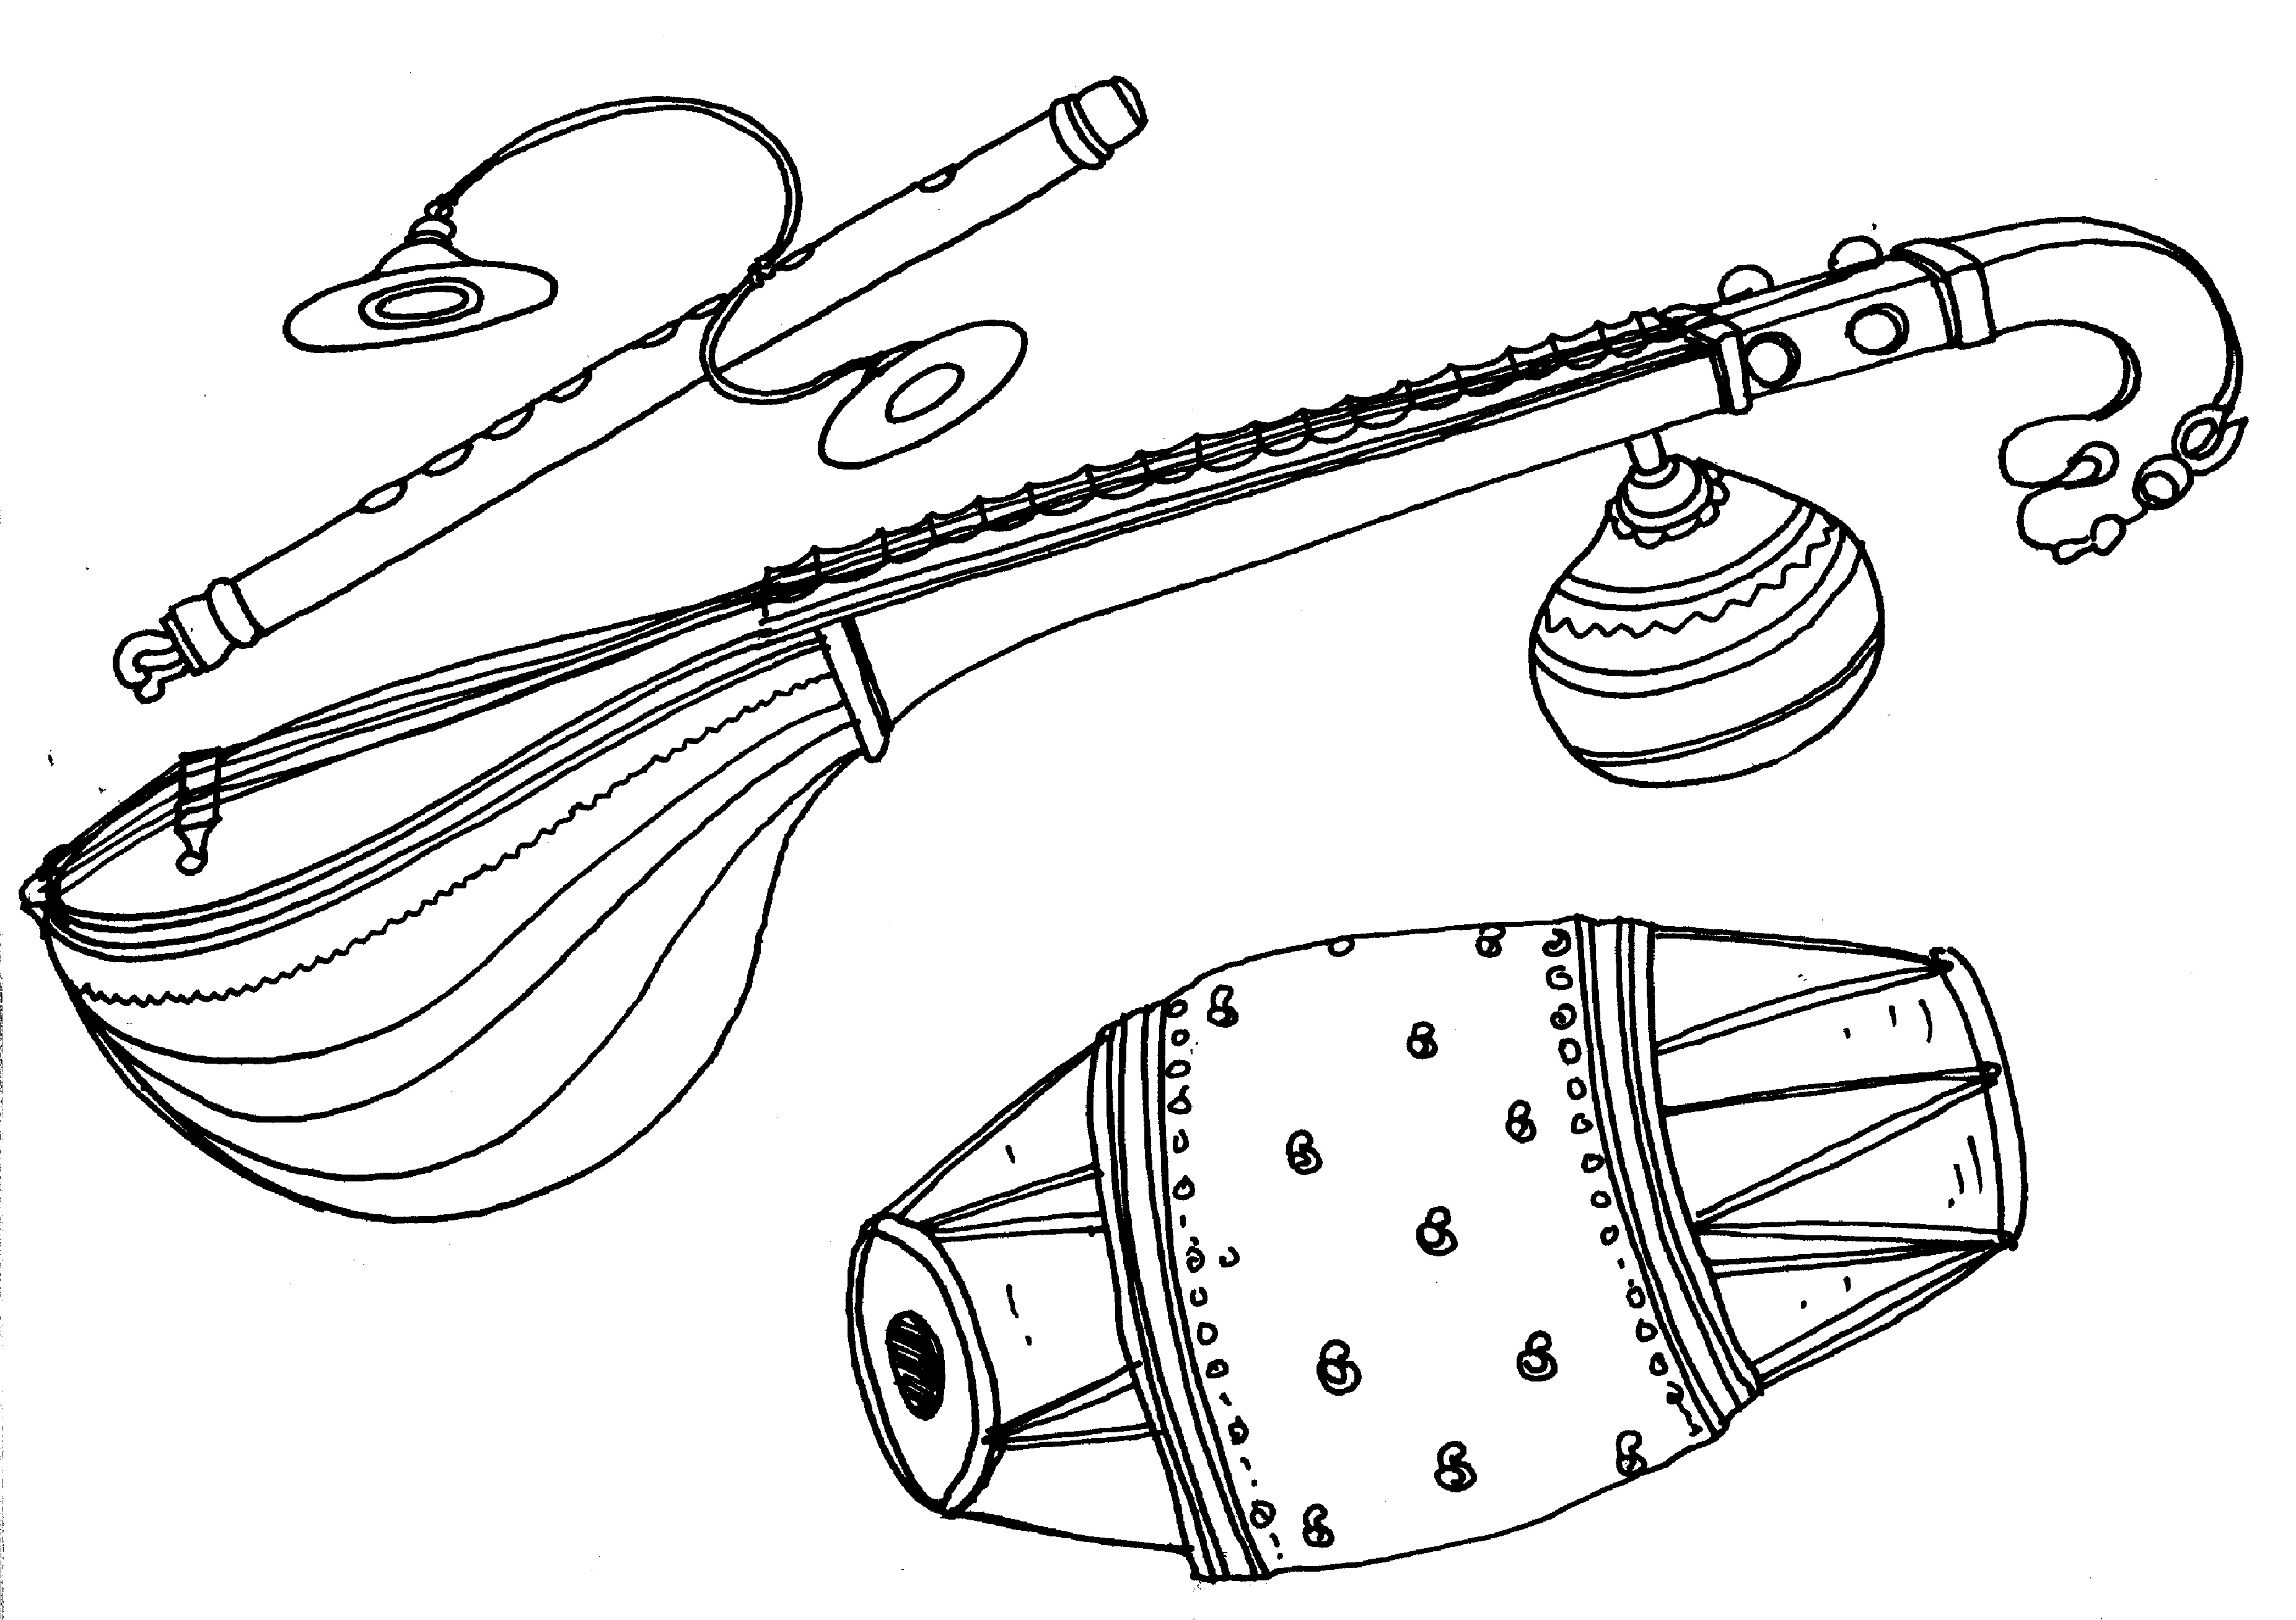 coloring musical instruments drawing how to draw musical instruments for kids world gitaar instruments coloring drawing musical